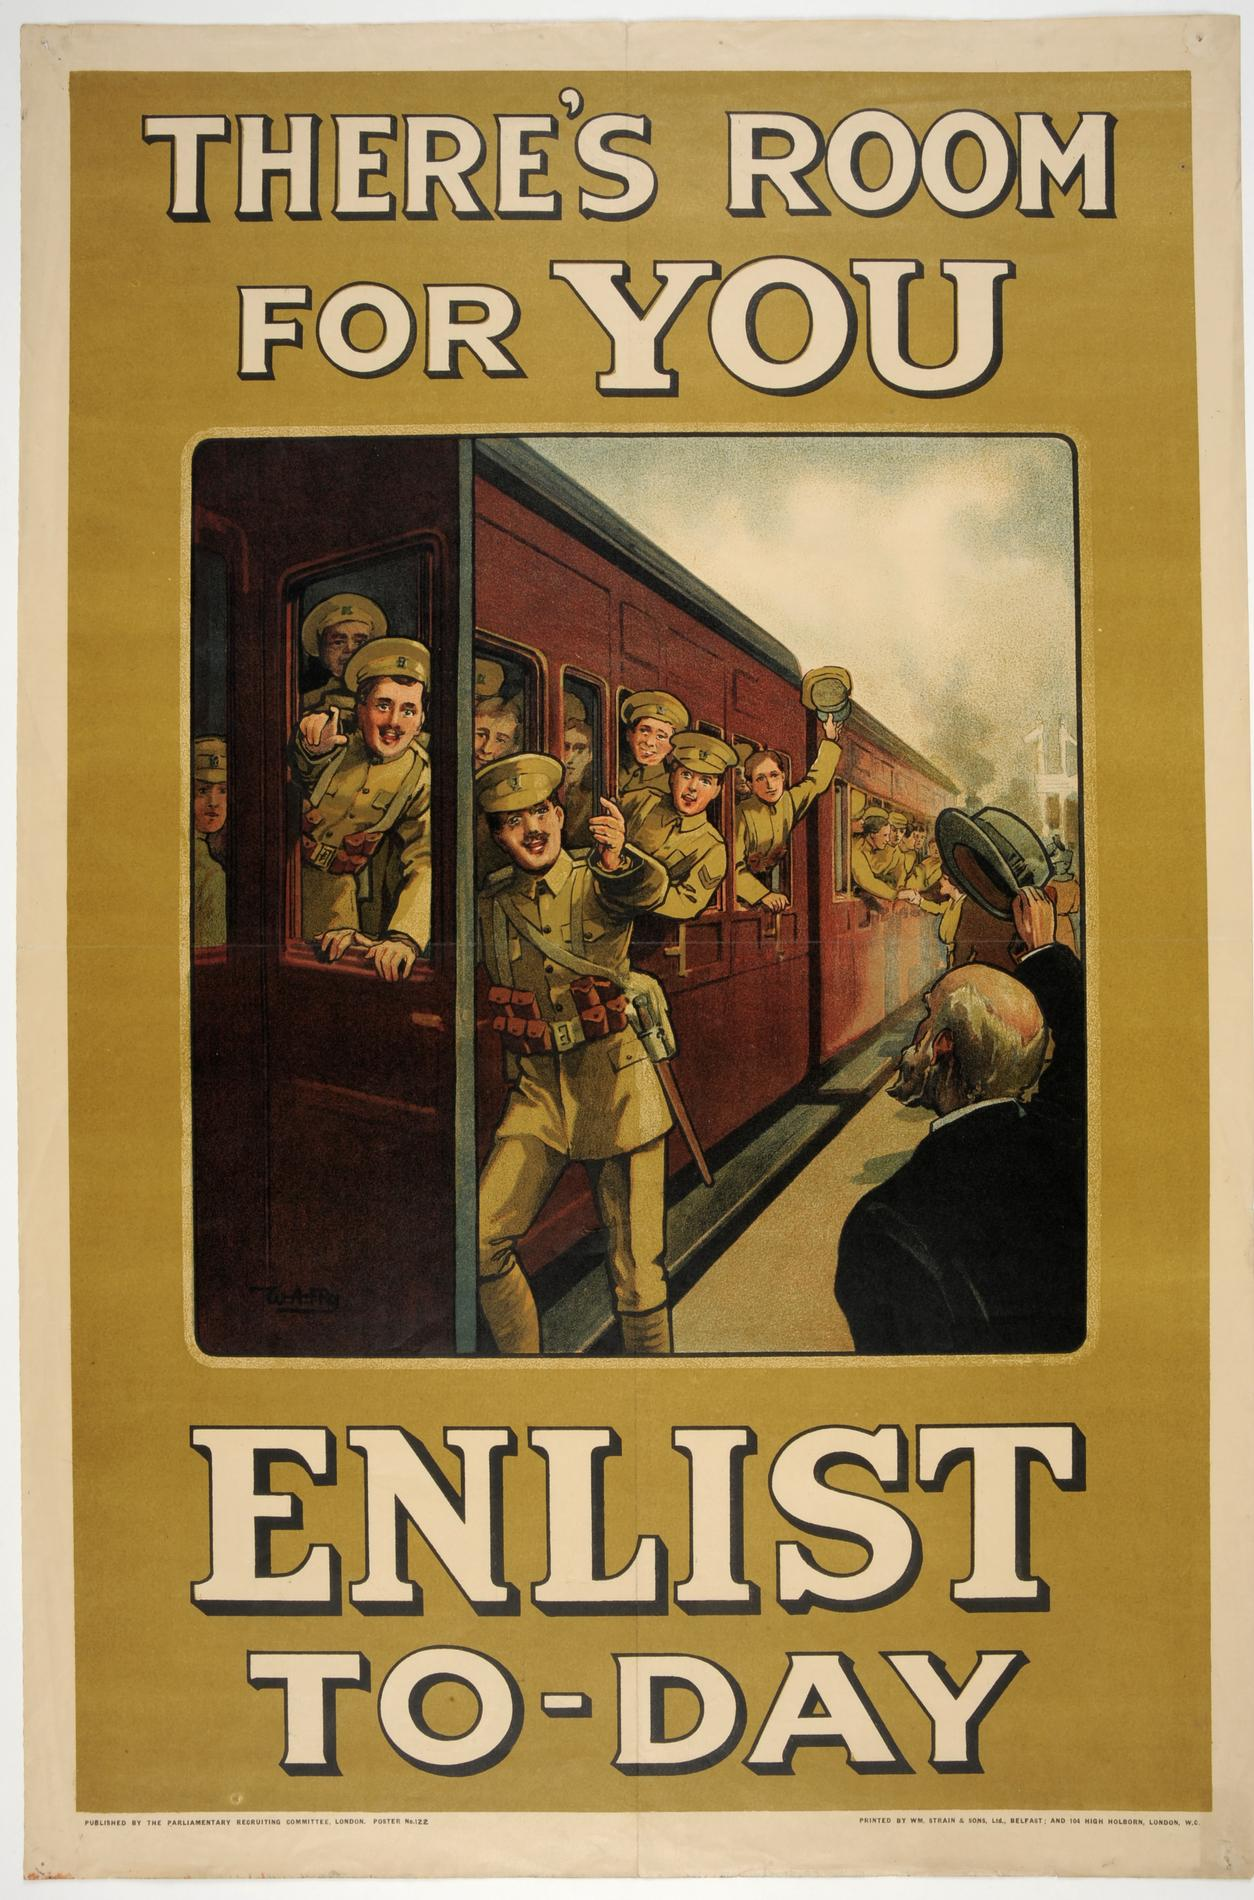 Theres room for you. Enlist to-day (Poster)